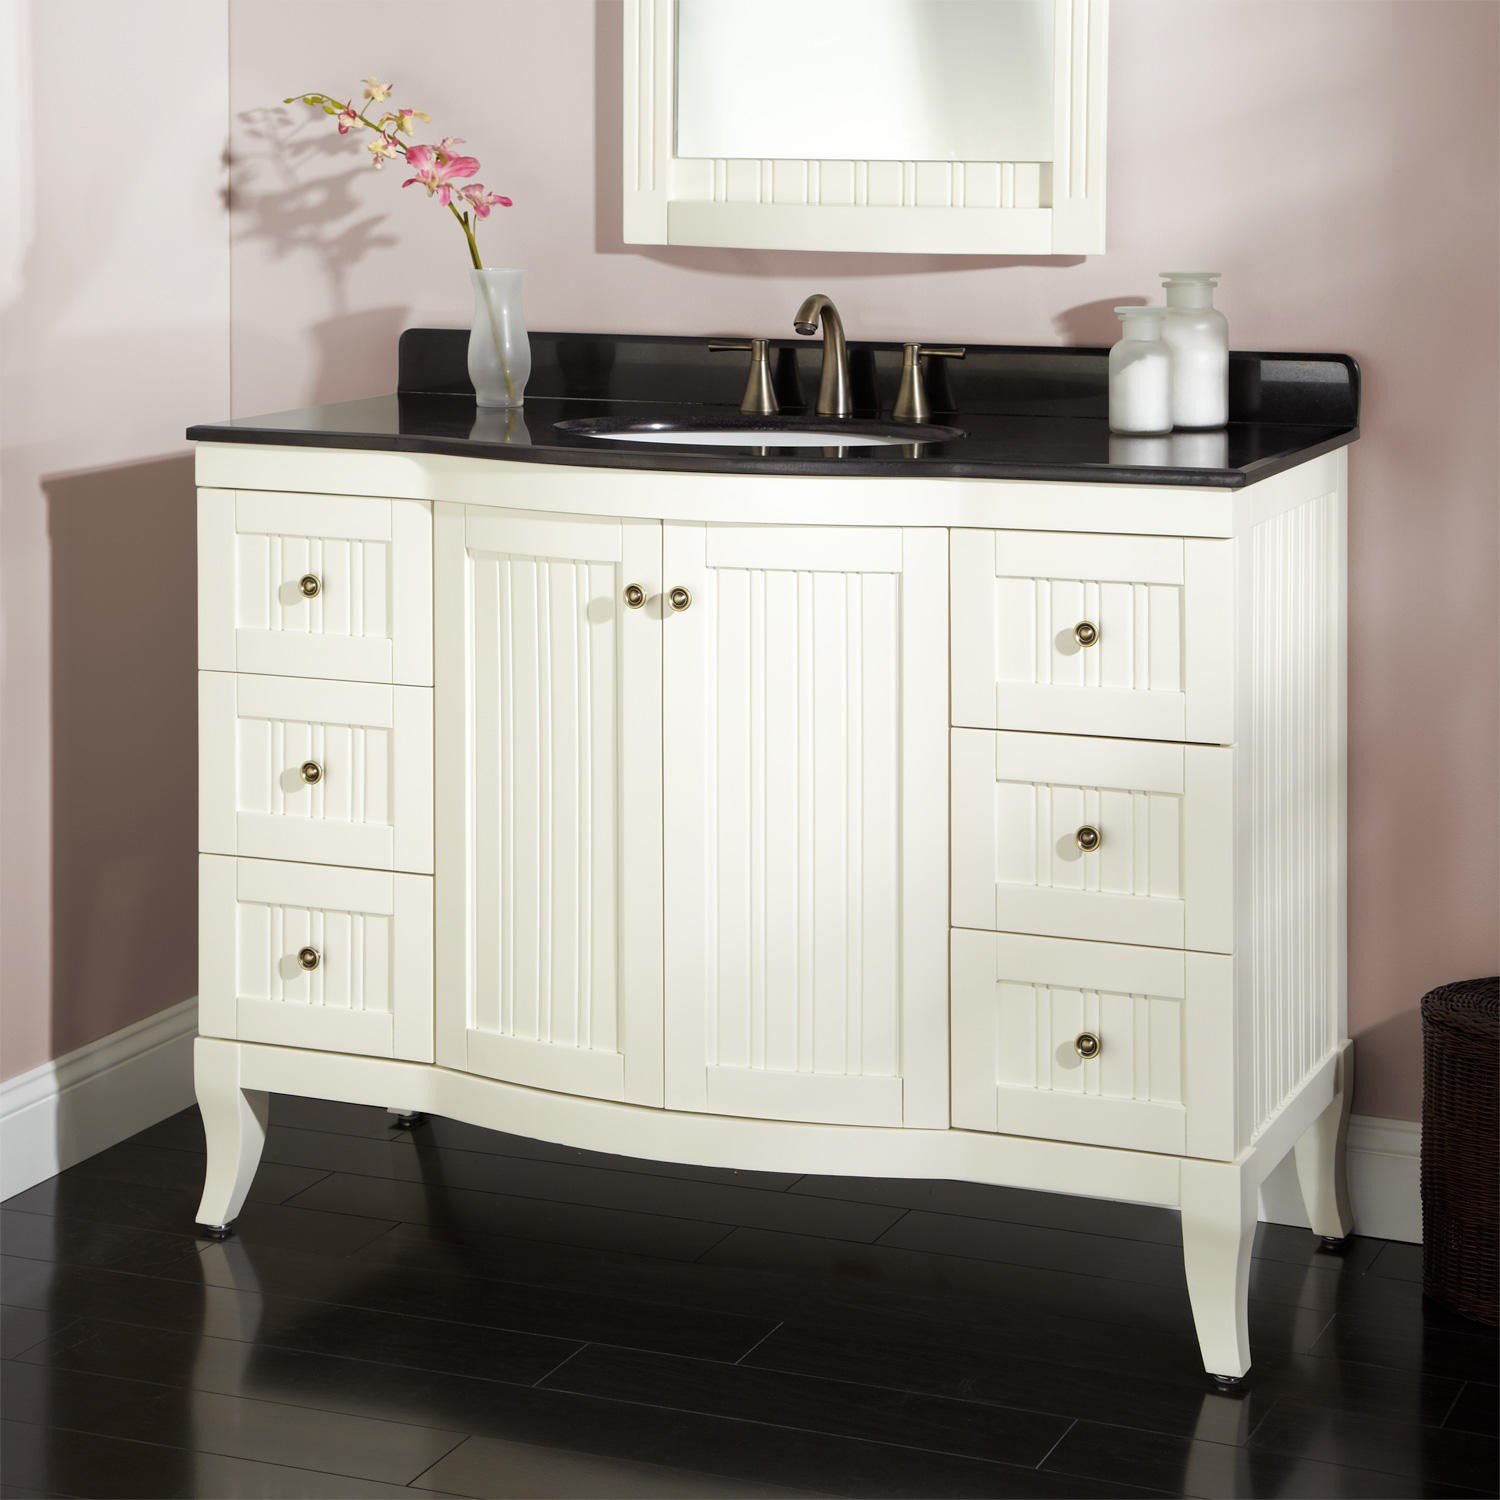 bathroom modern home small decor vanities vanity black